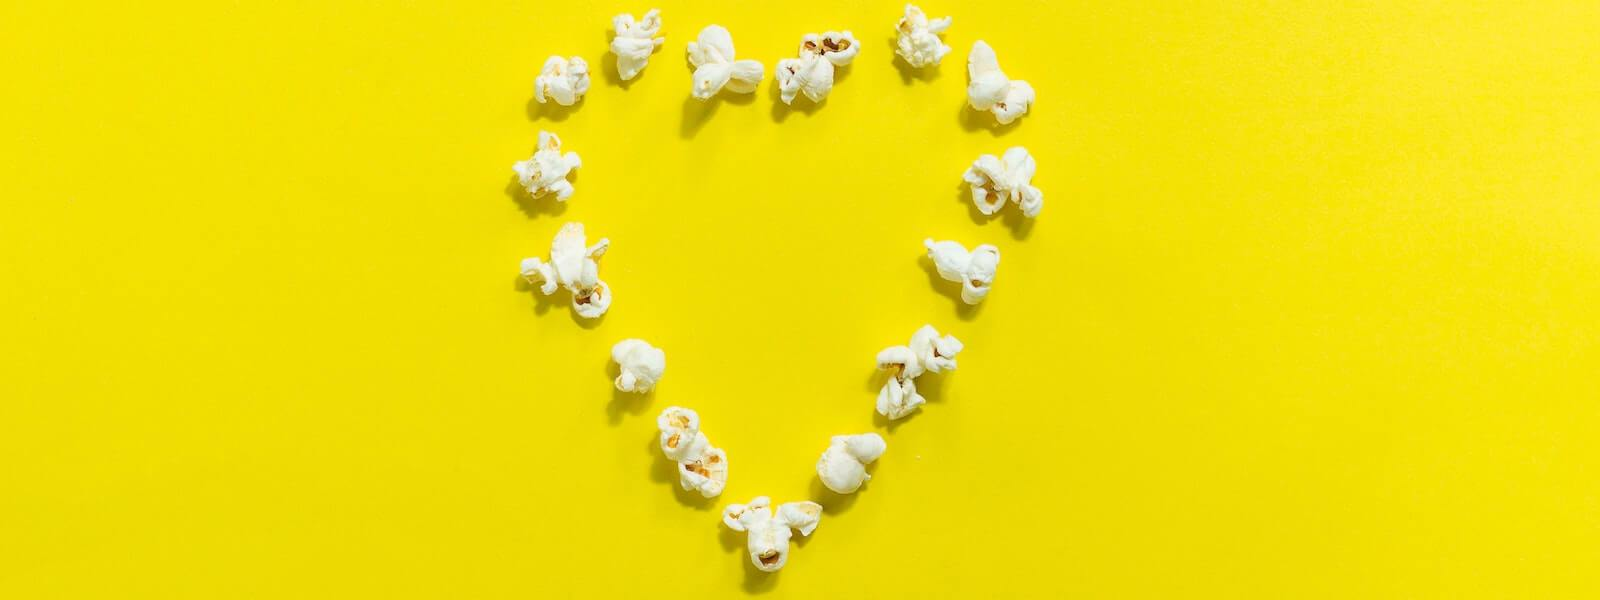 Popcorn in the shape of a heart.